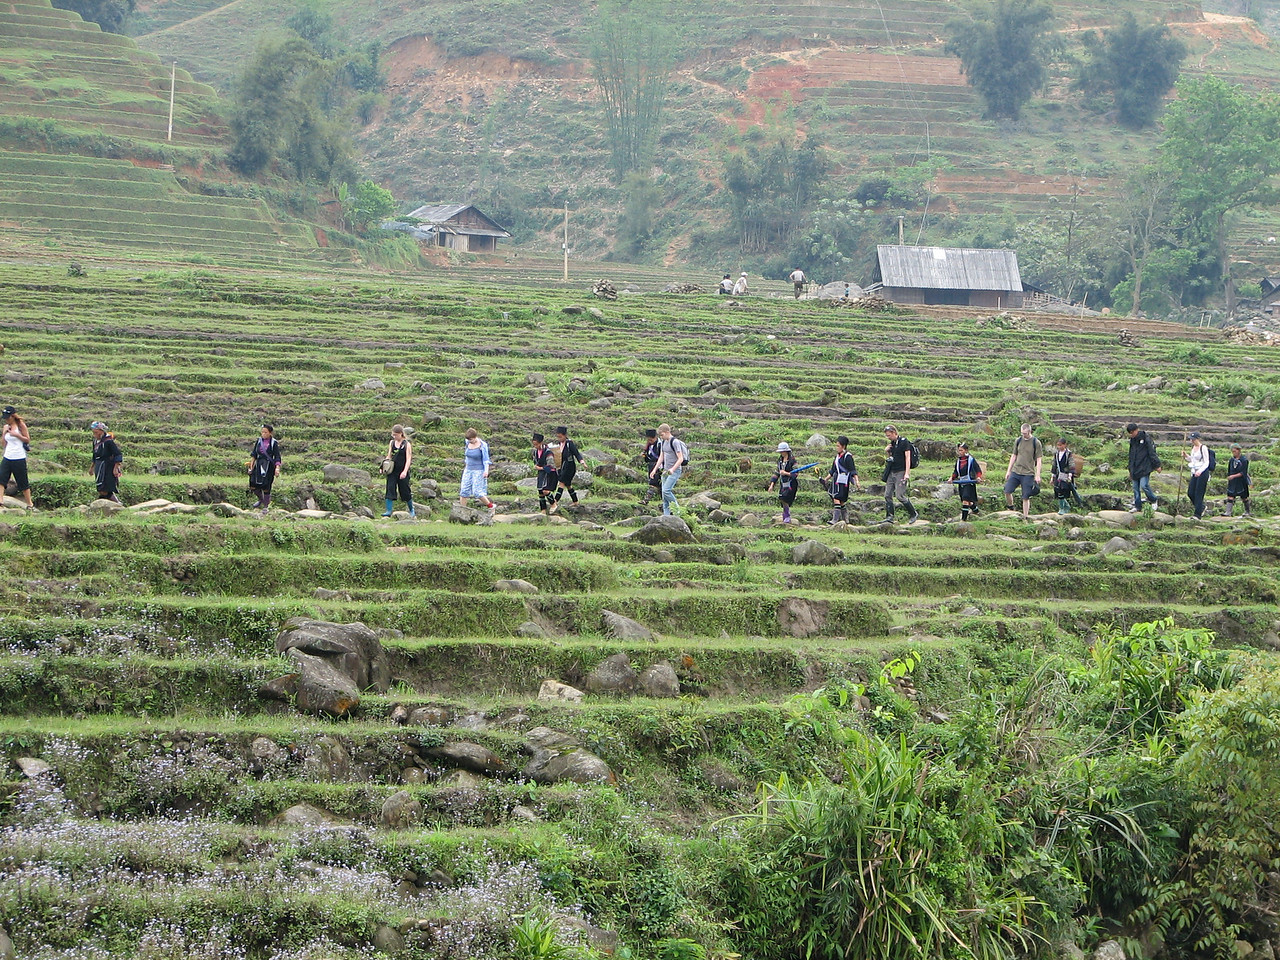 Each group of hikers had their Hmong followers who would help them along the way and then offer to sell them goods at the end of the trip.